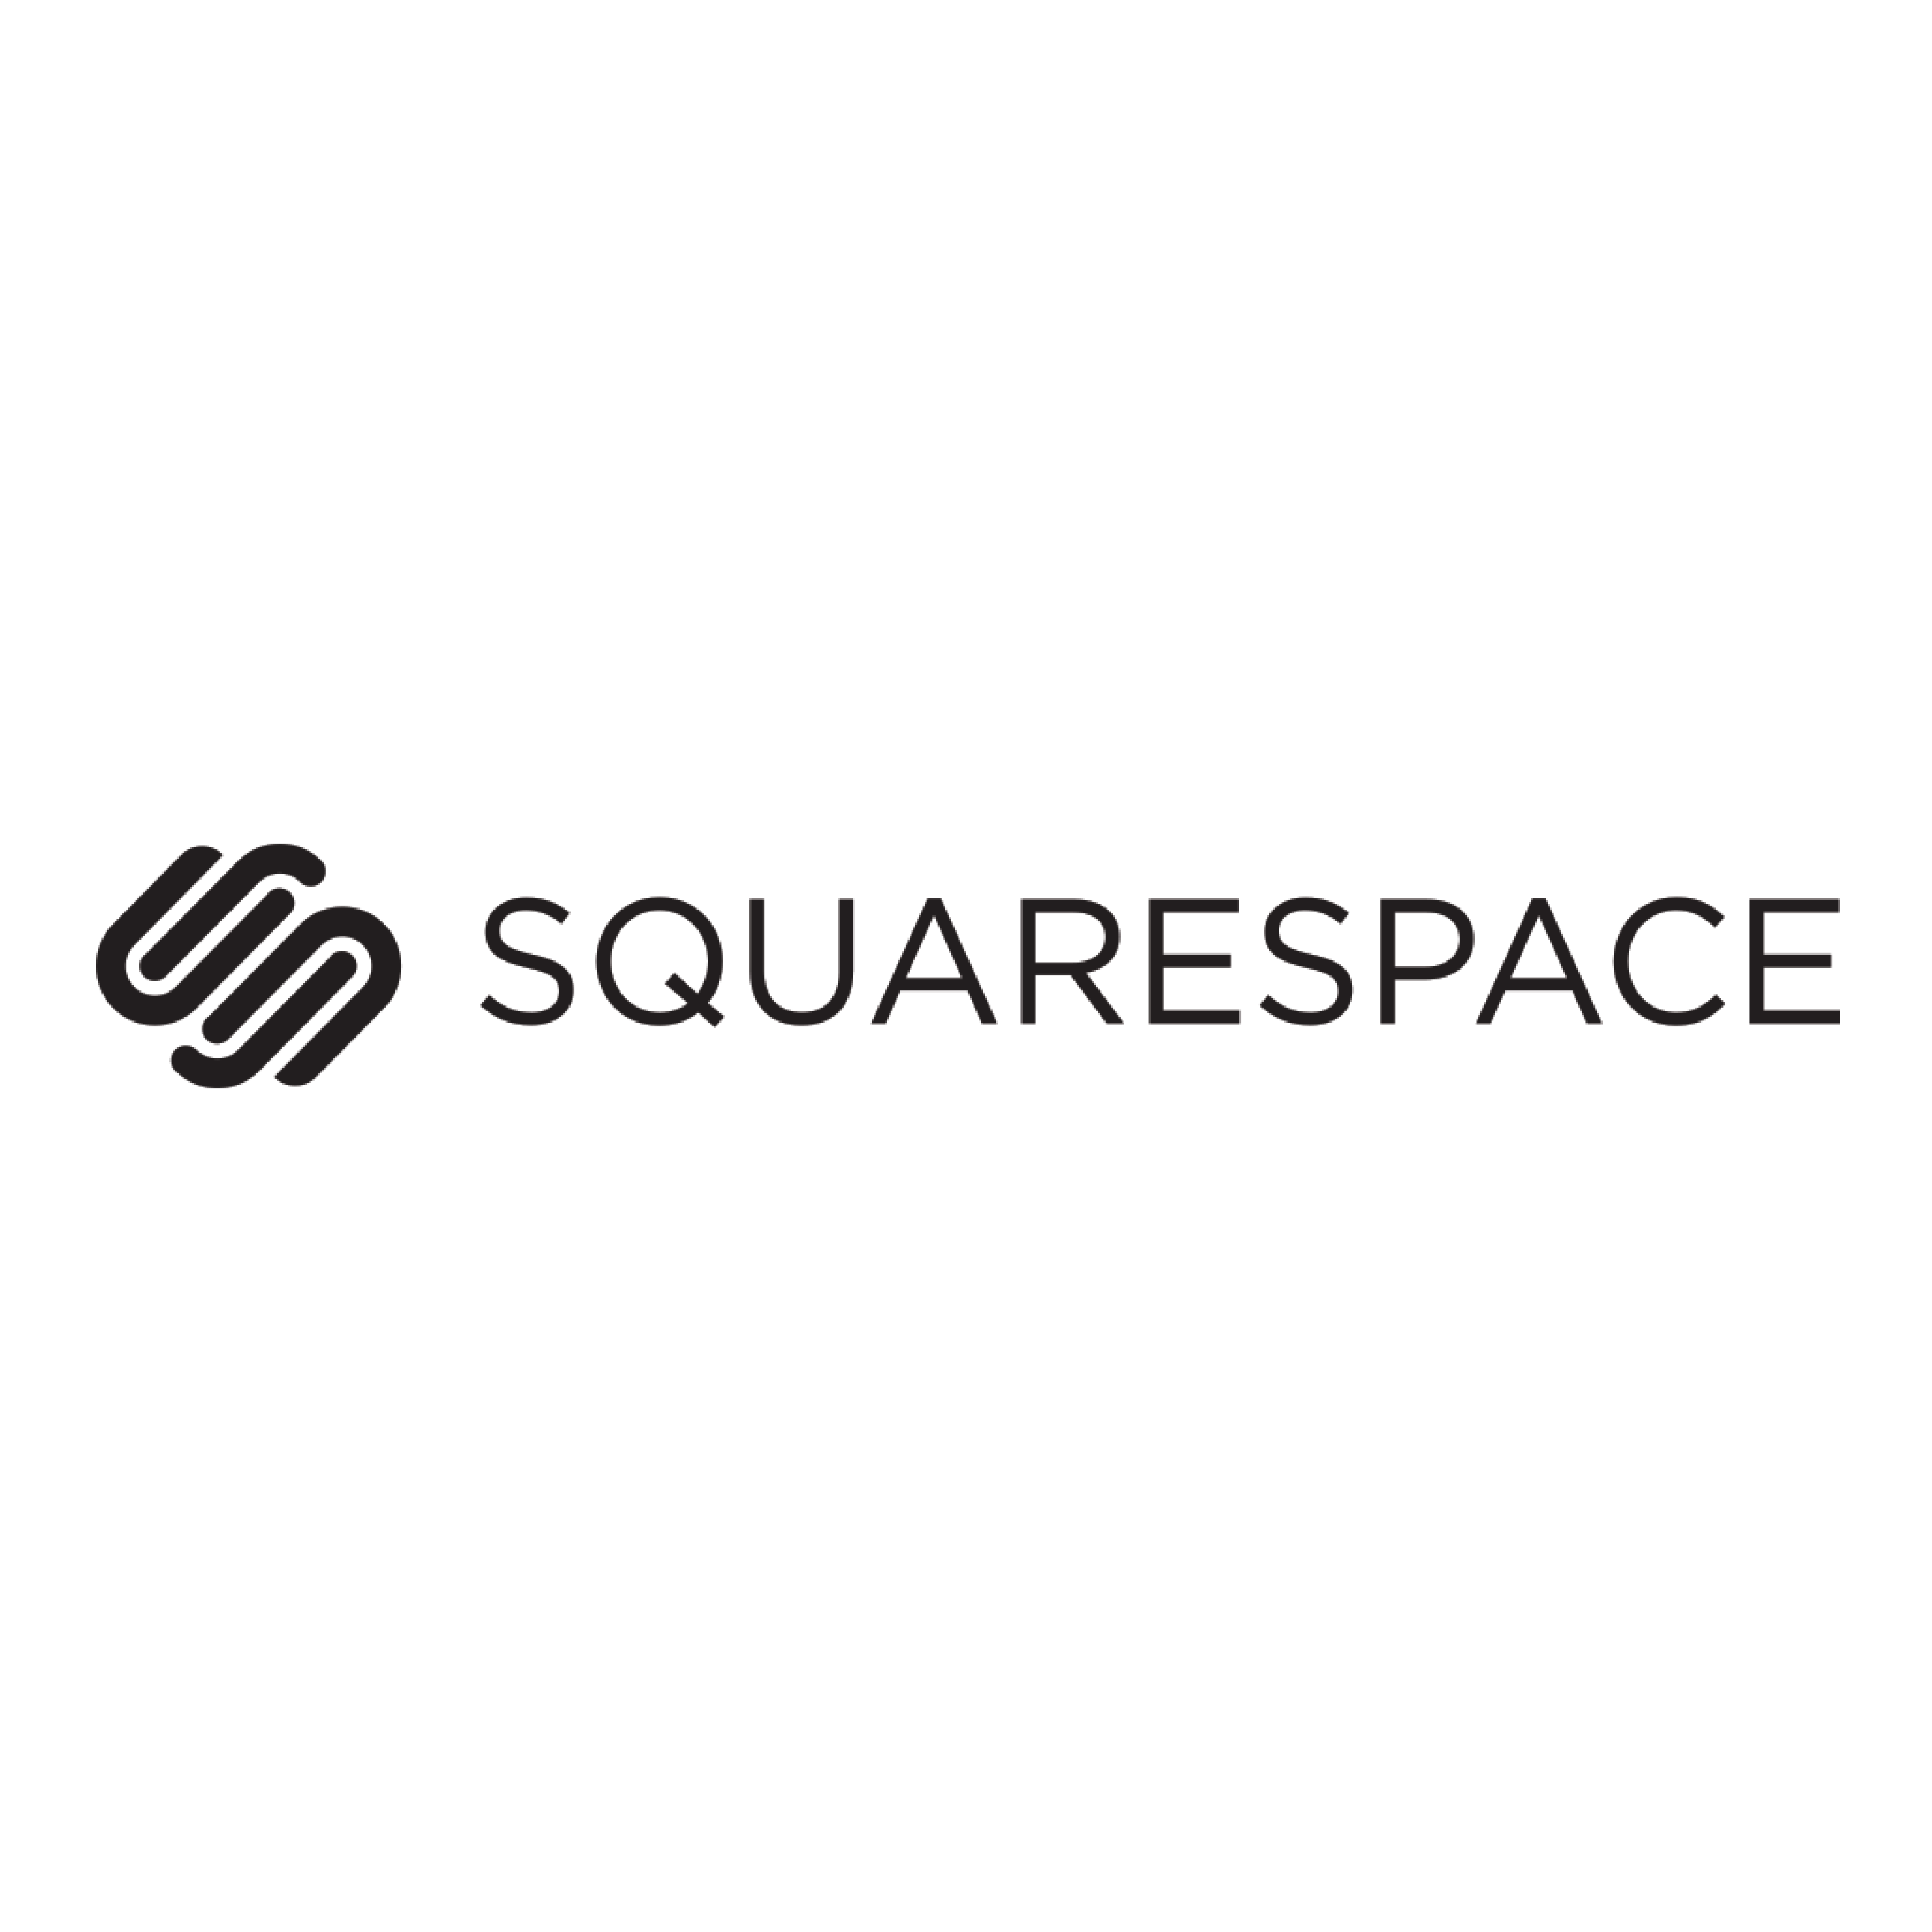 Squarespace Shipedge Integration